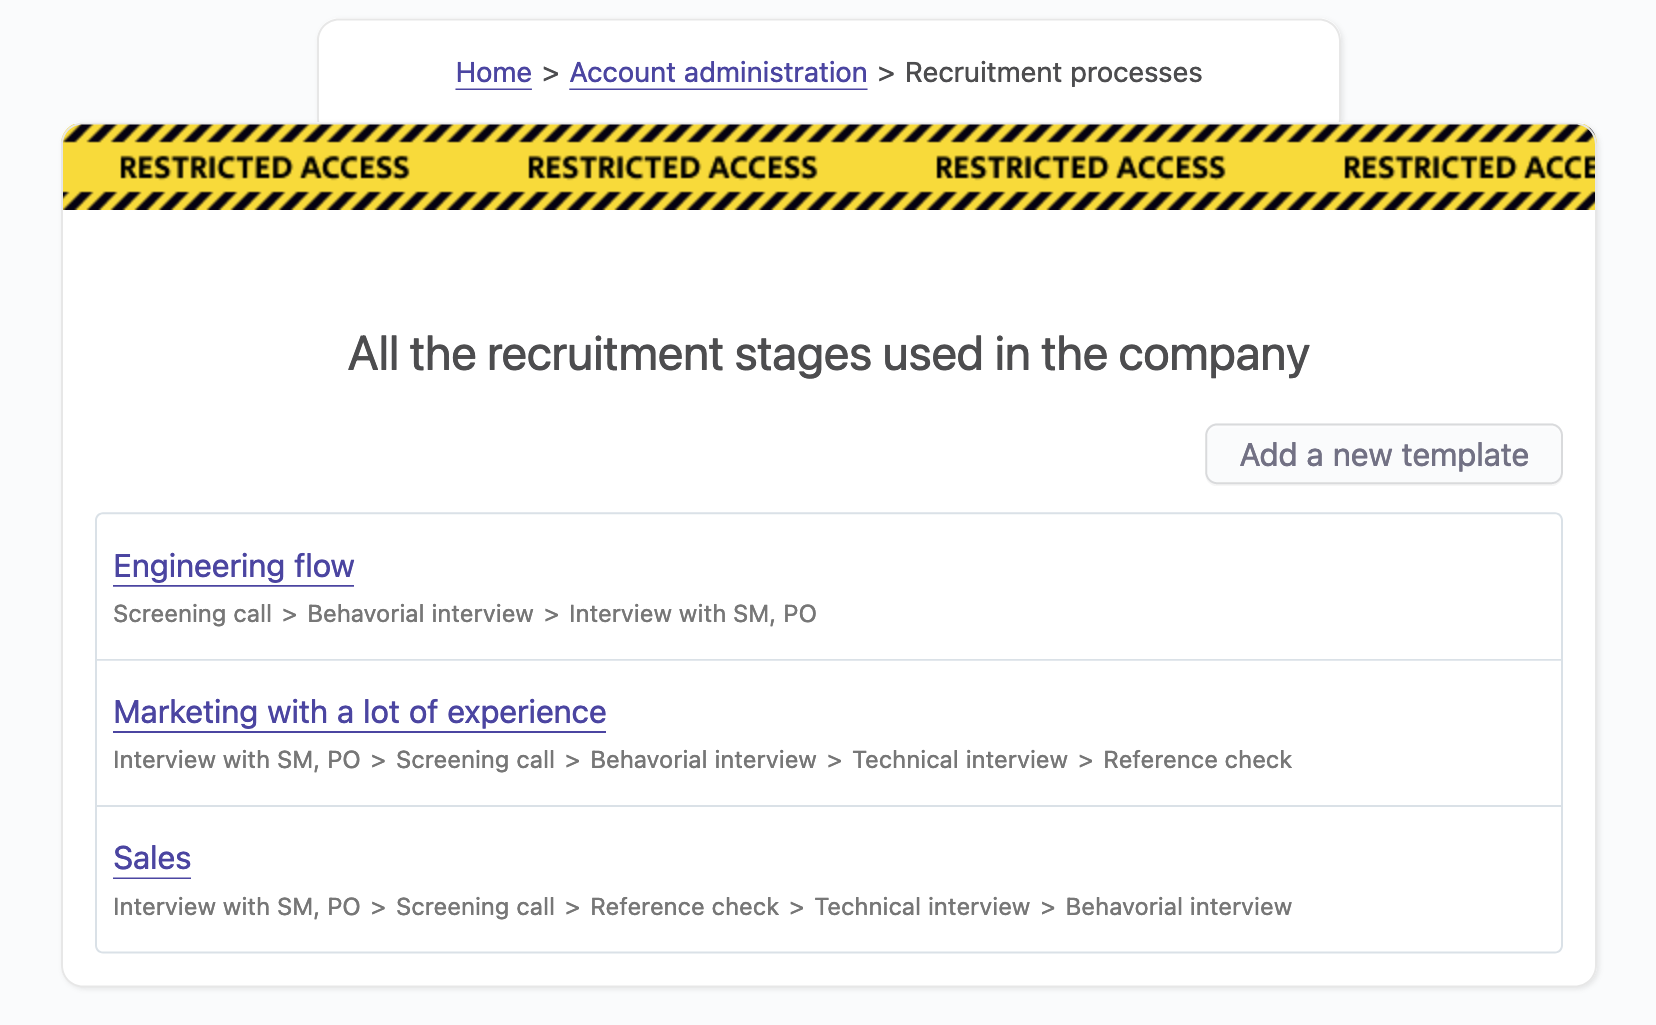 Recruiting stage templates